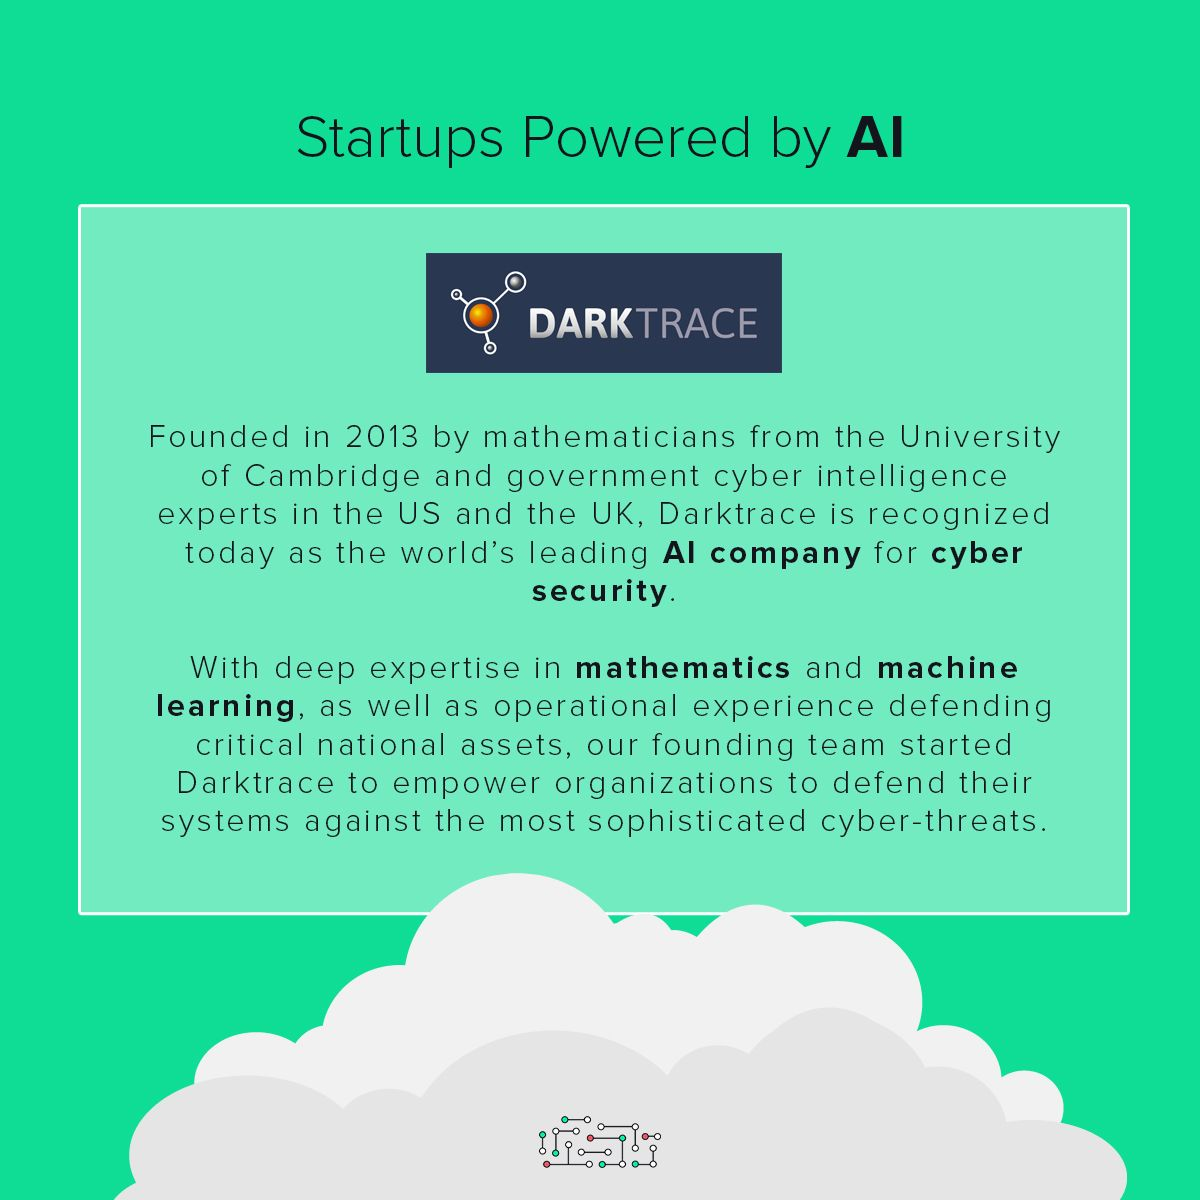 Darktrace is a security startup from Cambridge that uses